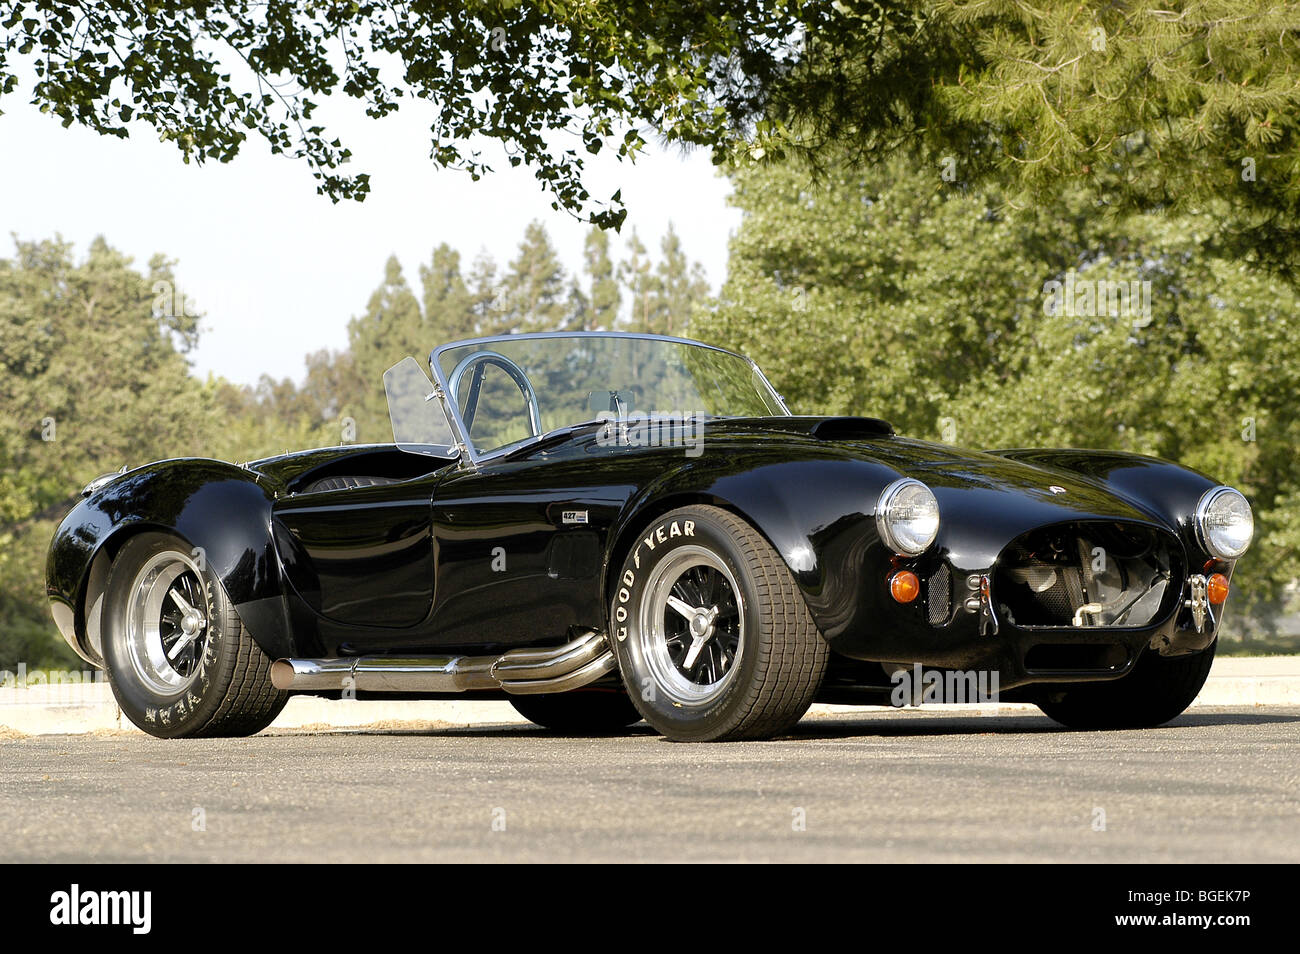 1967 shelby cobra 427 in black this is a real shelby car stock photo royalty free image. Black Bedroom Furniture Sets. Home Design Ideas